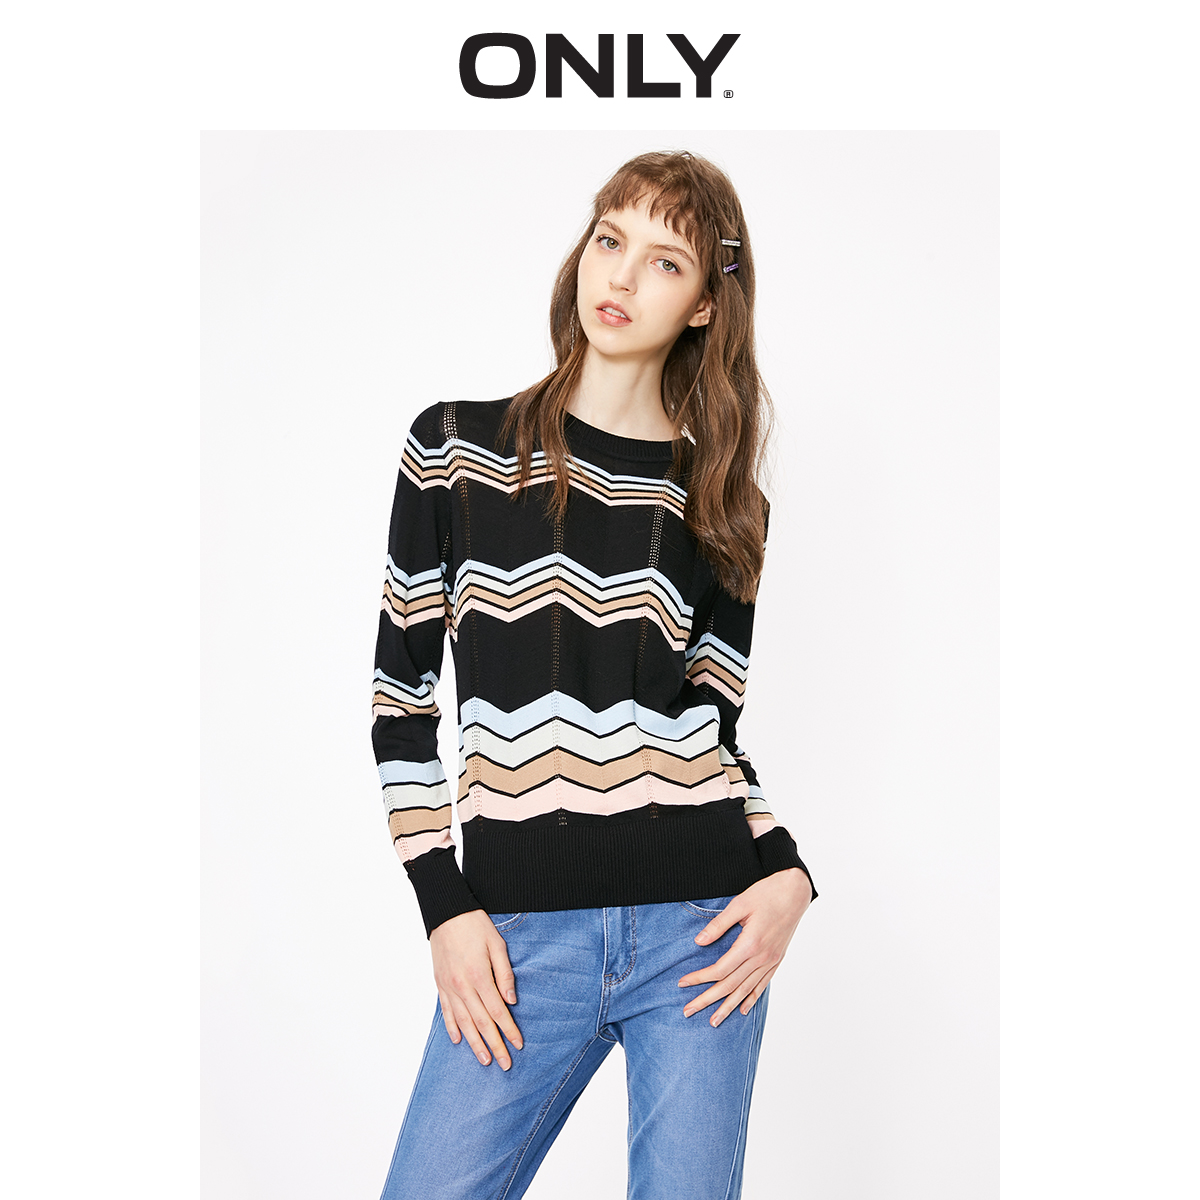 ONLY Autumn Winter Straight Fit Assorted Colors Striped Cut-outs Pullover Knit | 119124519